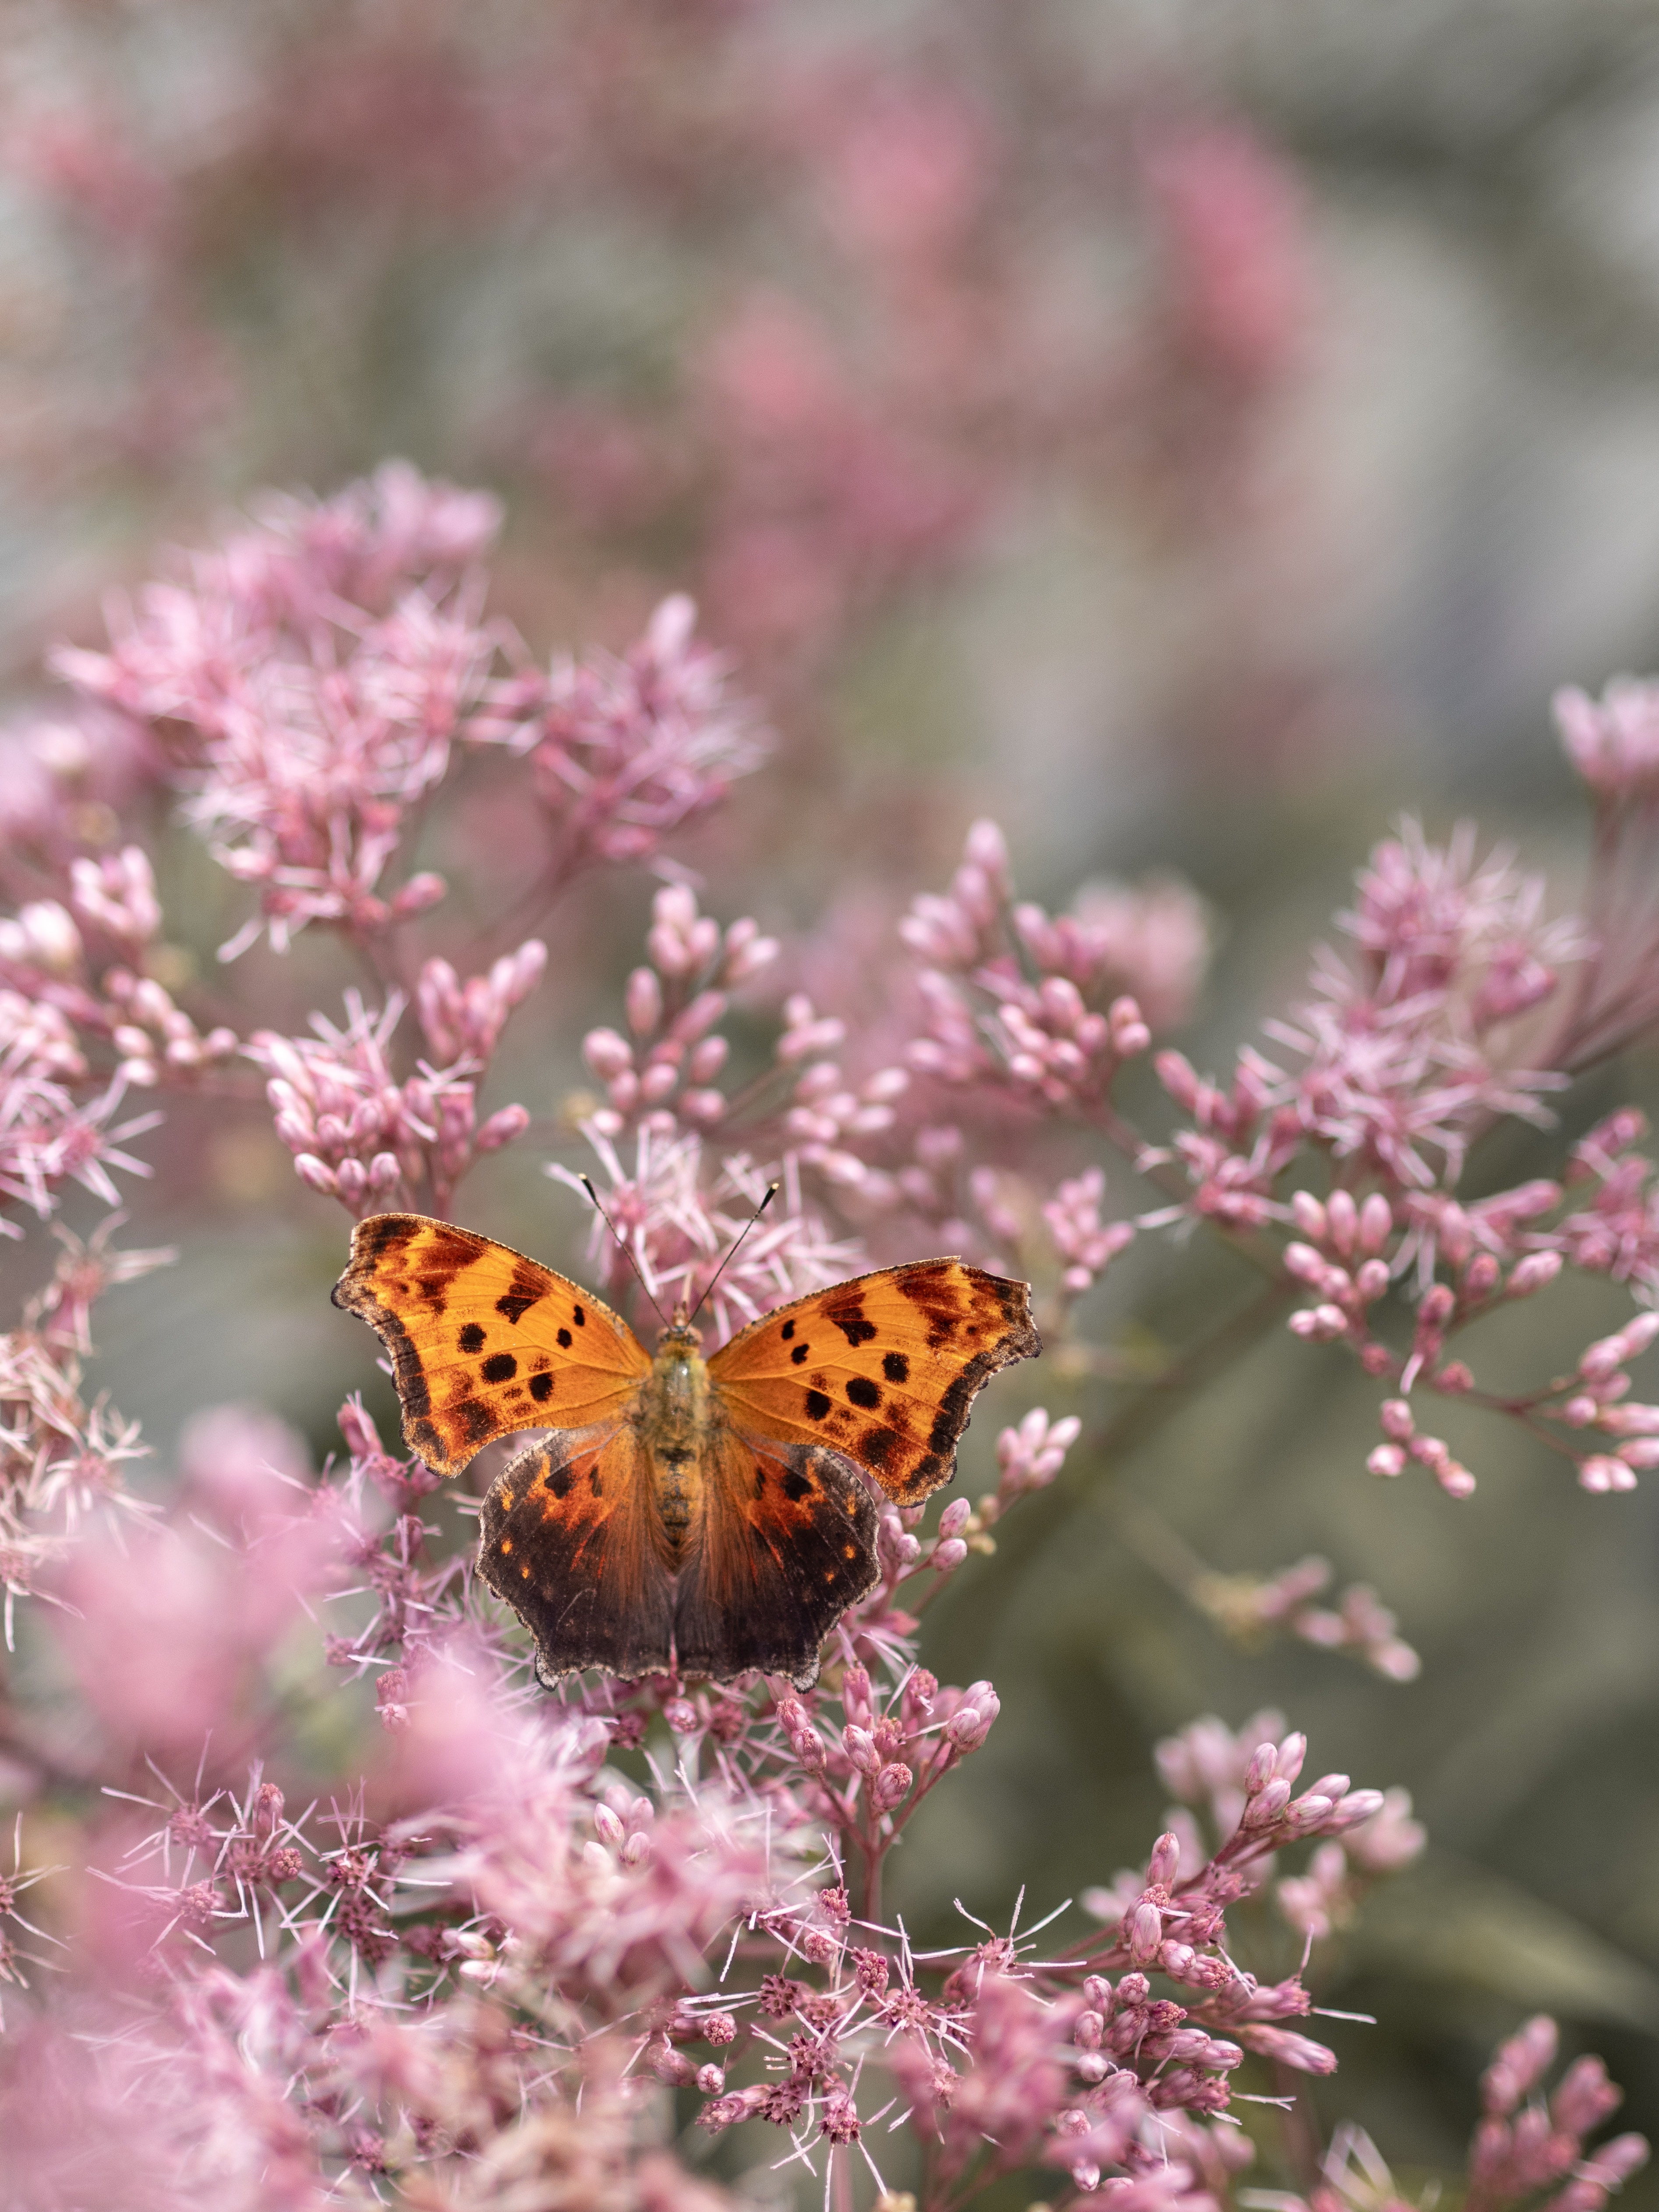 brown and black butterfly perched on pink flower